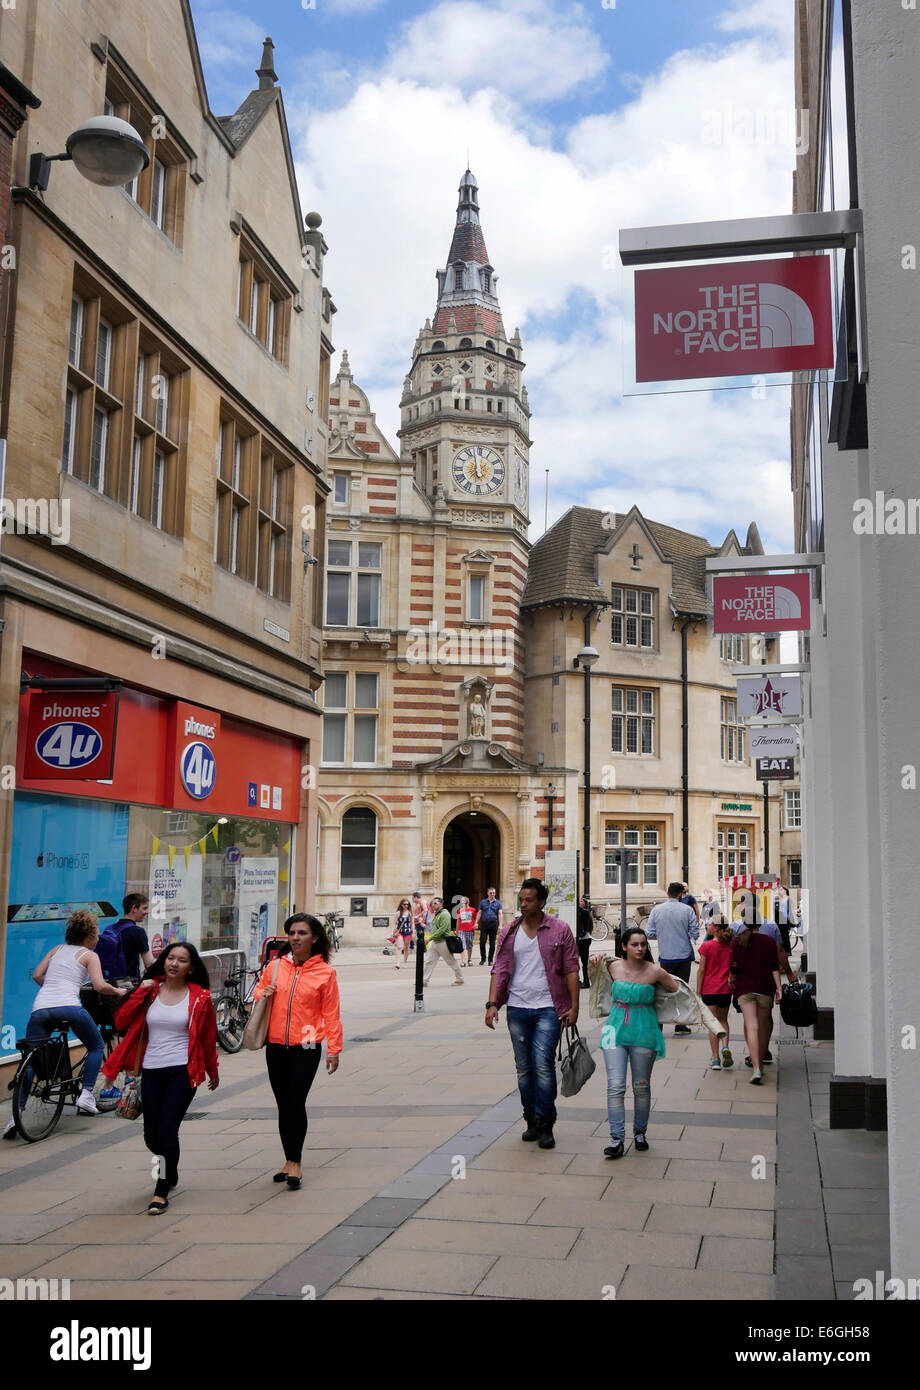 Petty Curry pedestrian shopping street and old Foster Bank Building (Lloyds TSB) with clock tower, central Cambridge, - Stock Image